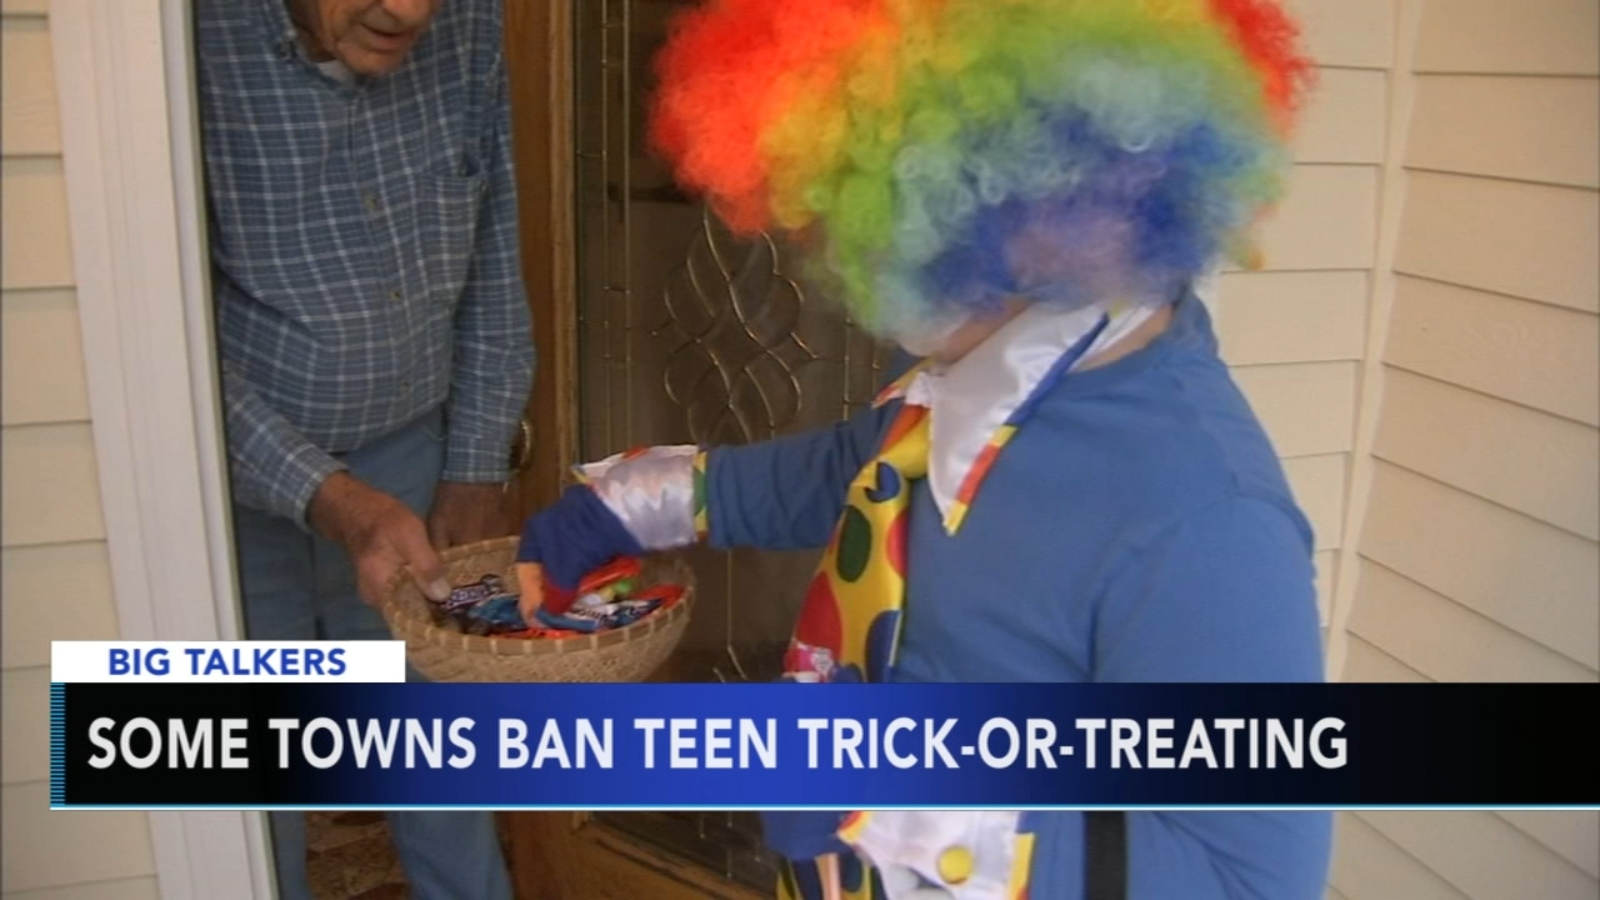 Some towns ban teen trick-or-treating